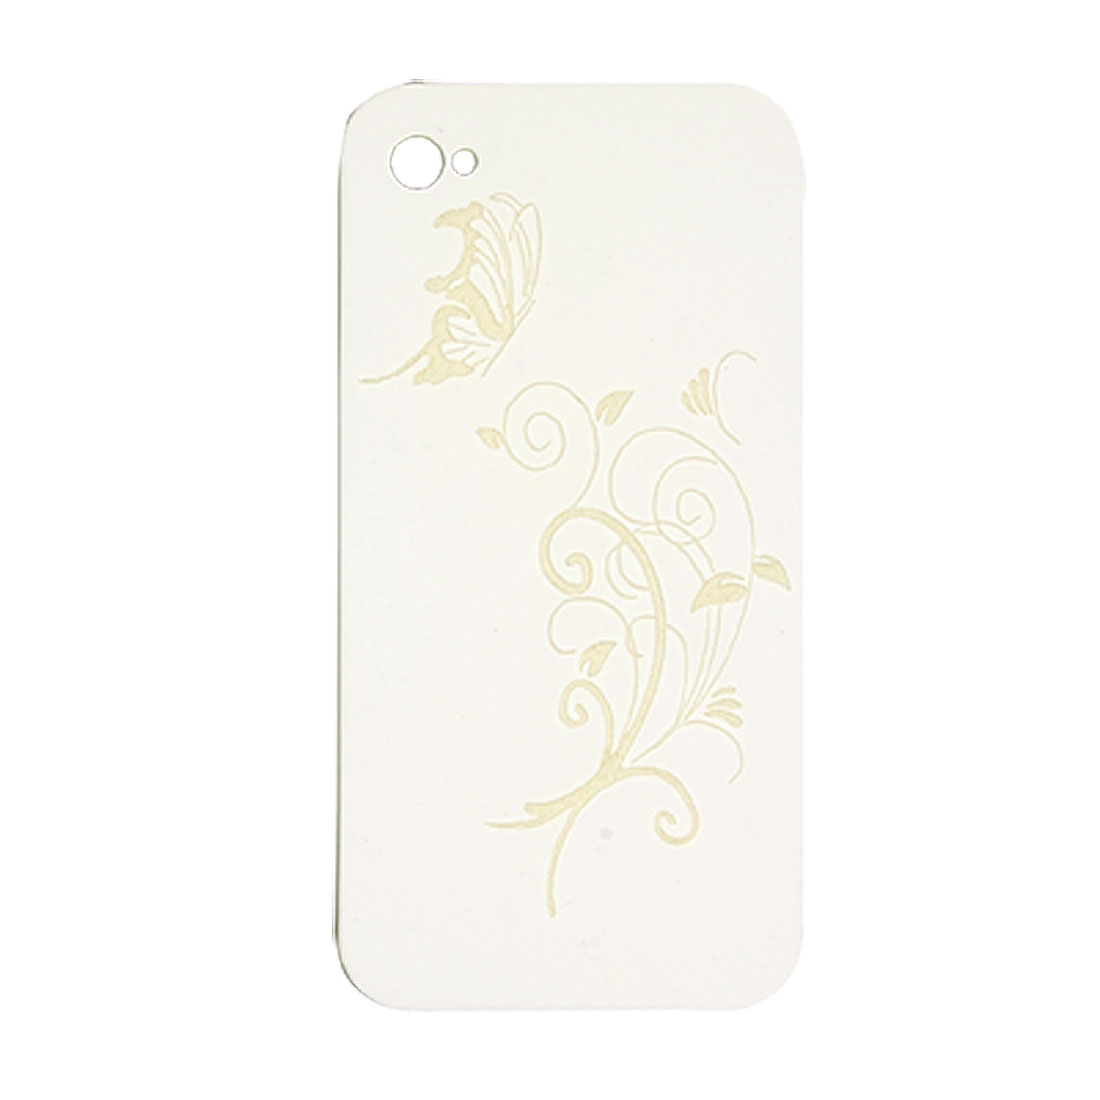 Vine Butterfly Design Plastic Cover White for iPhone 4